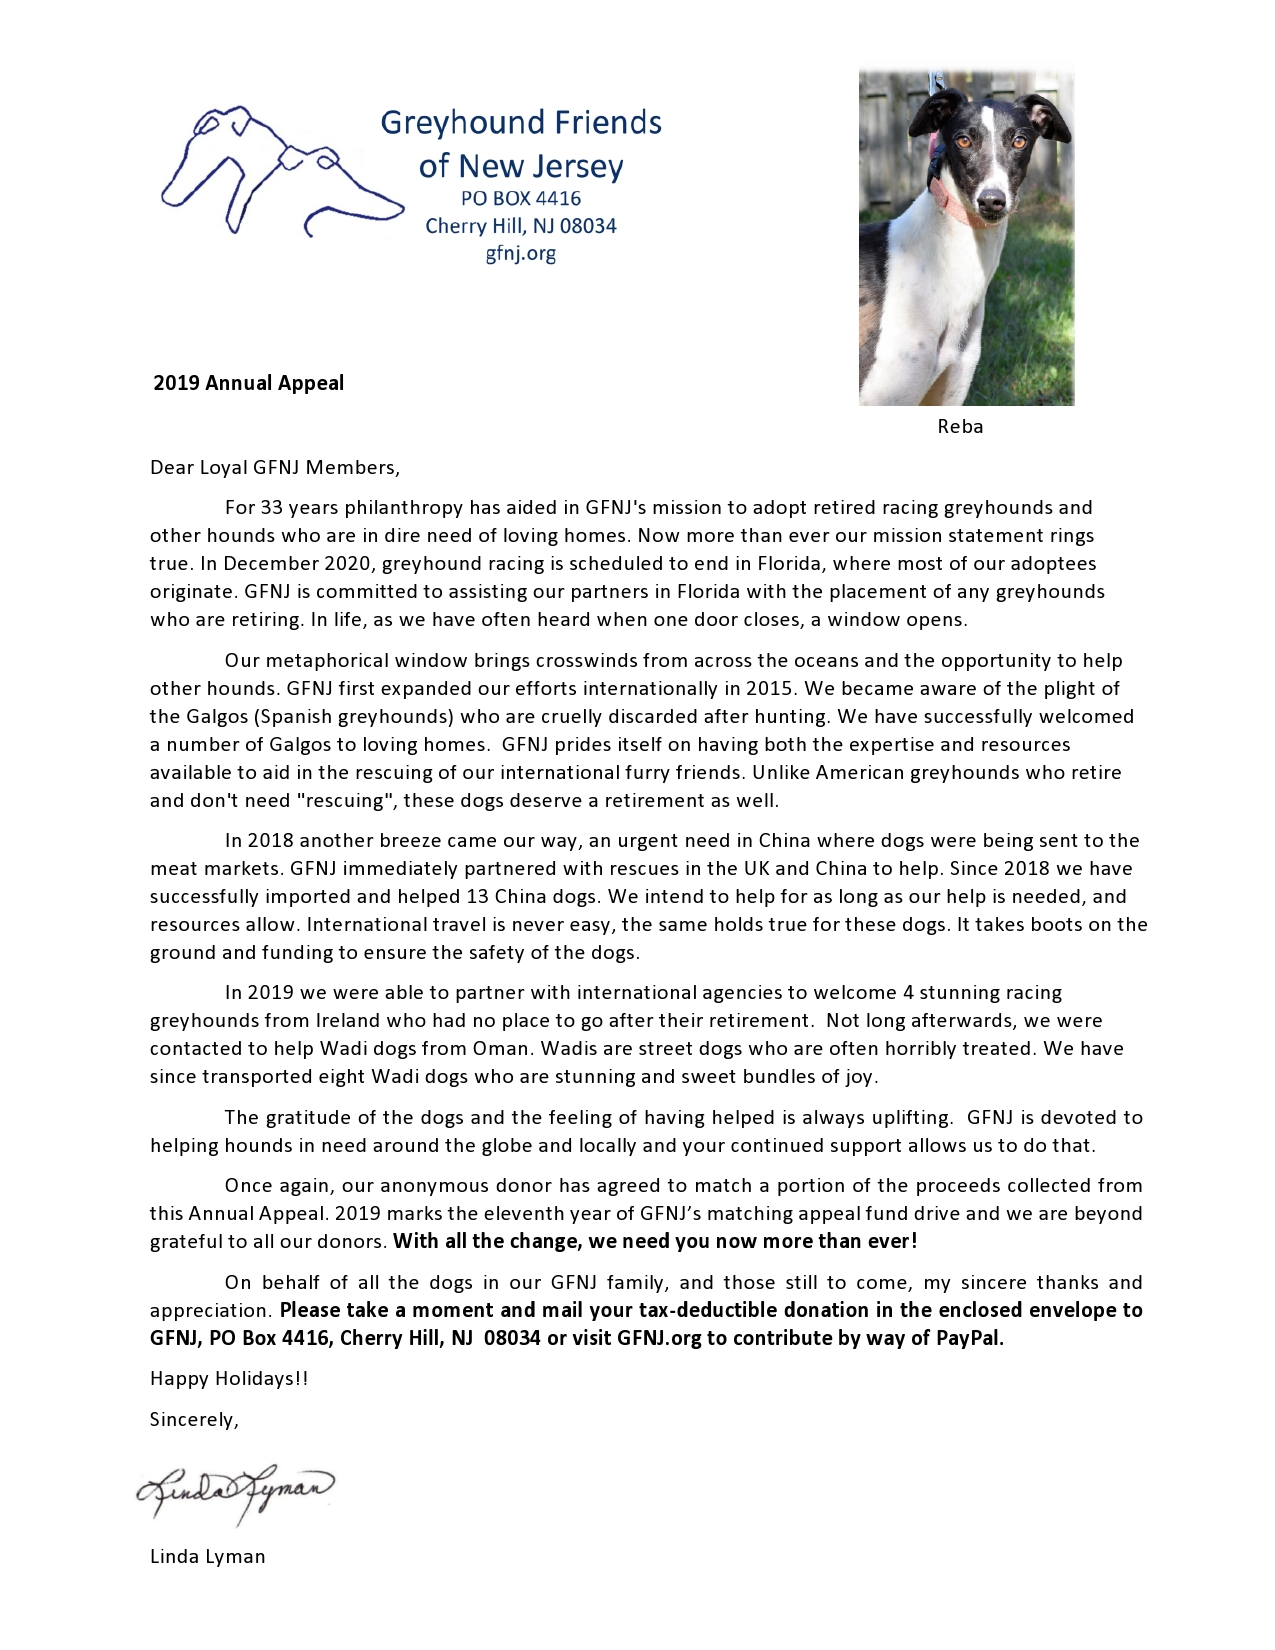 2019 Annual Appeal Letter